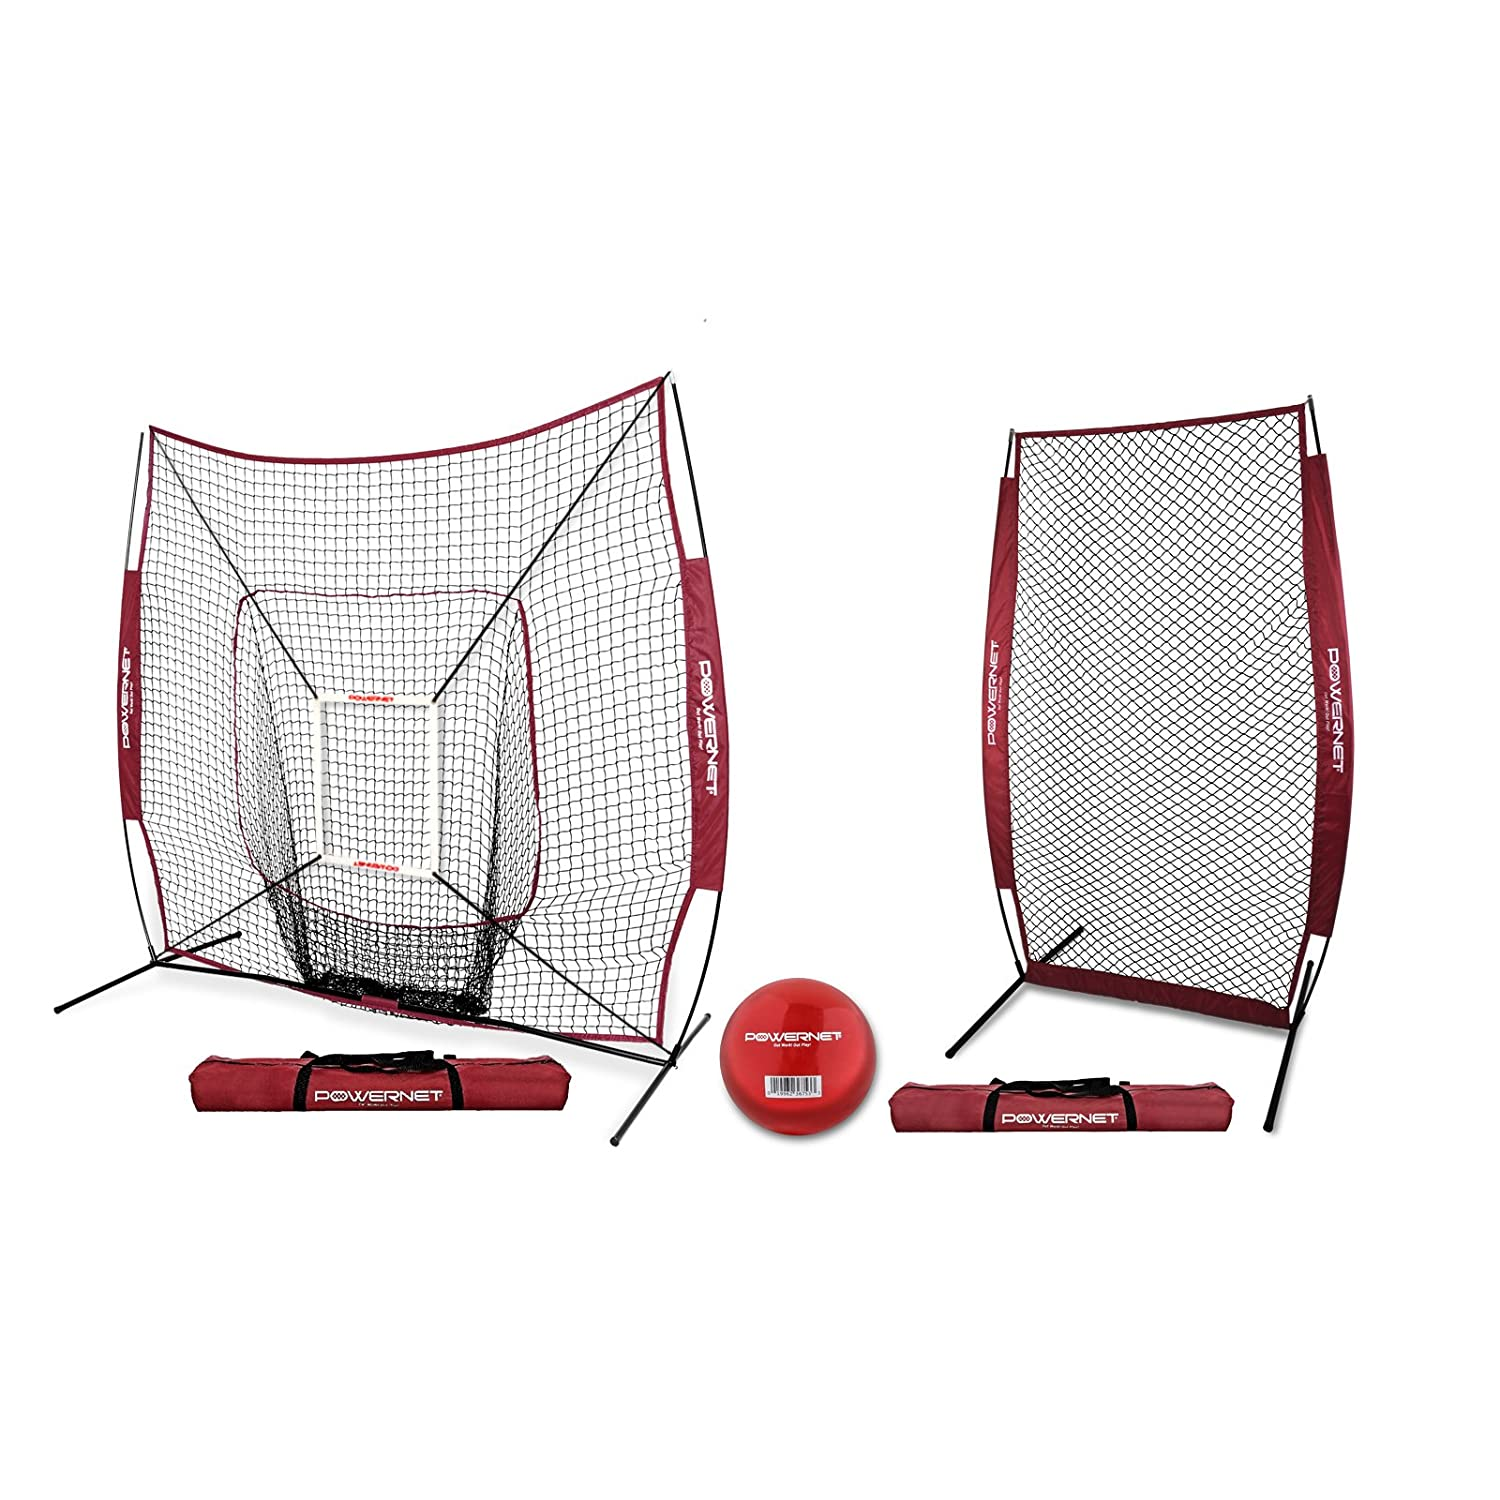 Softball Pitching Protection PowerNet 7x7 DLX Net and Portable Pitching I-Screen Bundle Instant Pitcher Barrier from Line Drives Grounders Front Toss Batting Practice Backstop